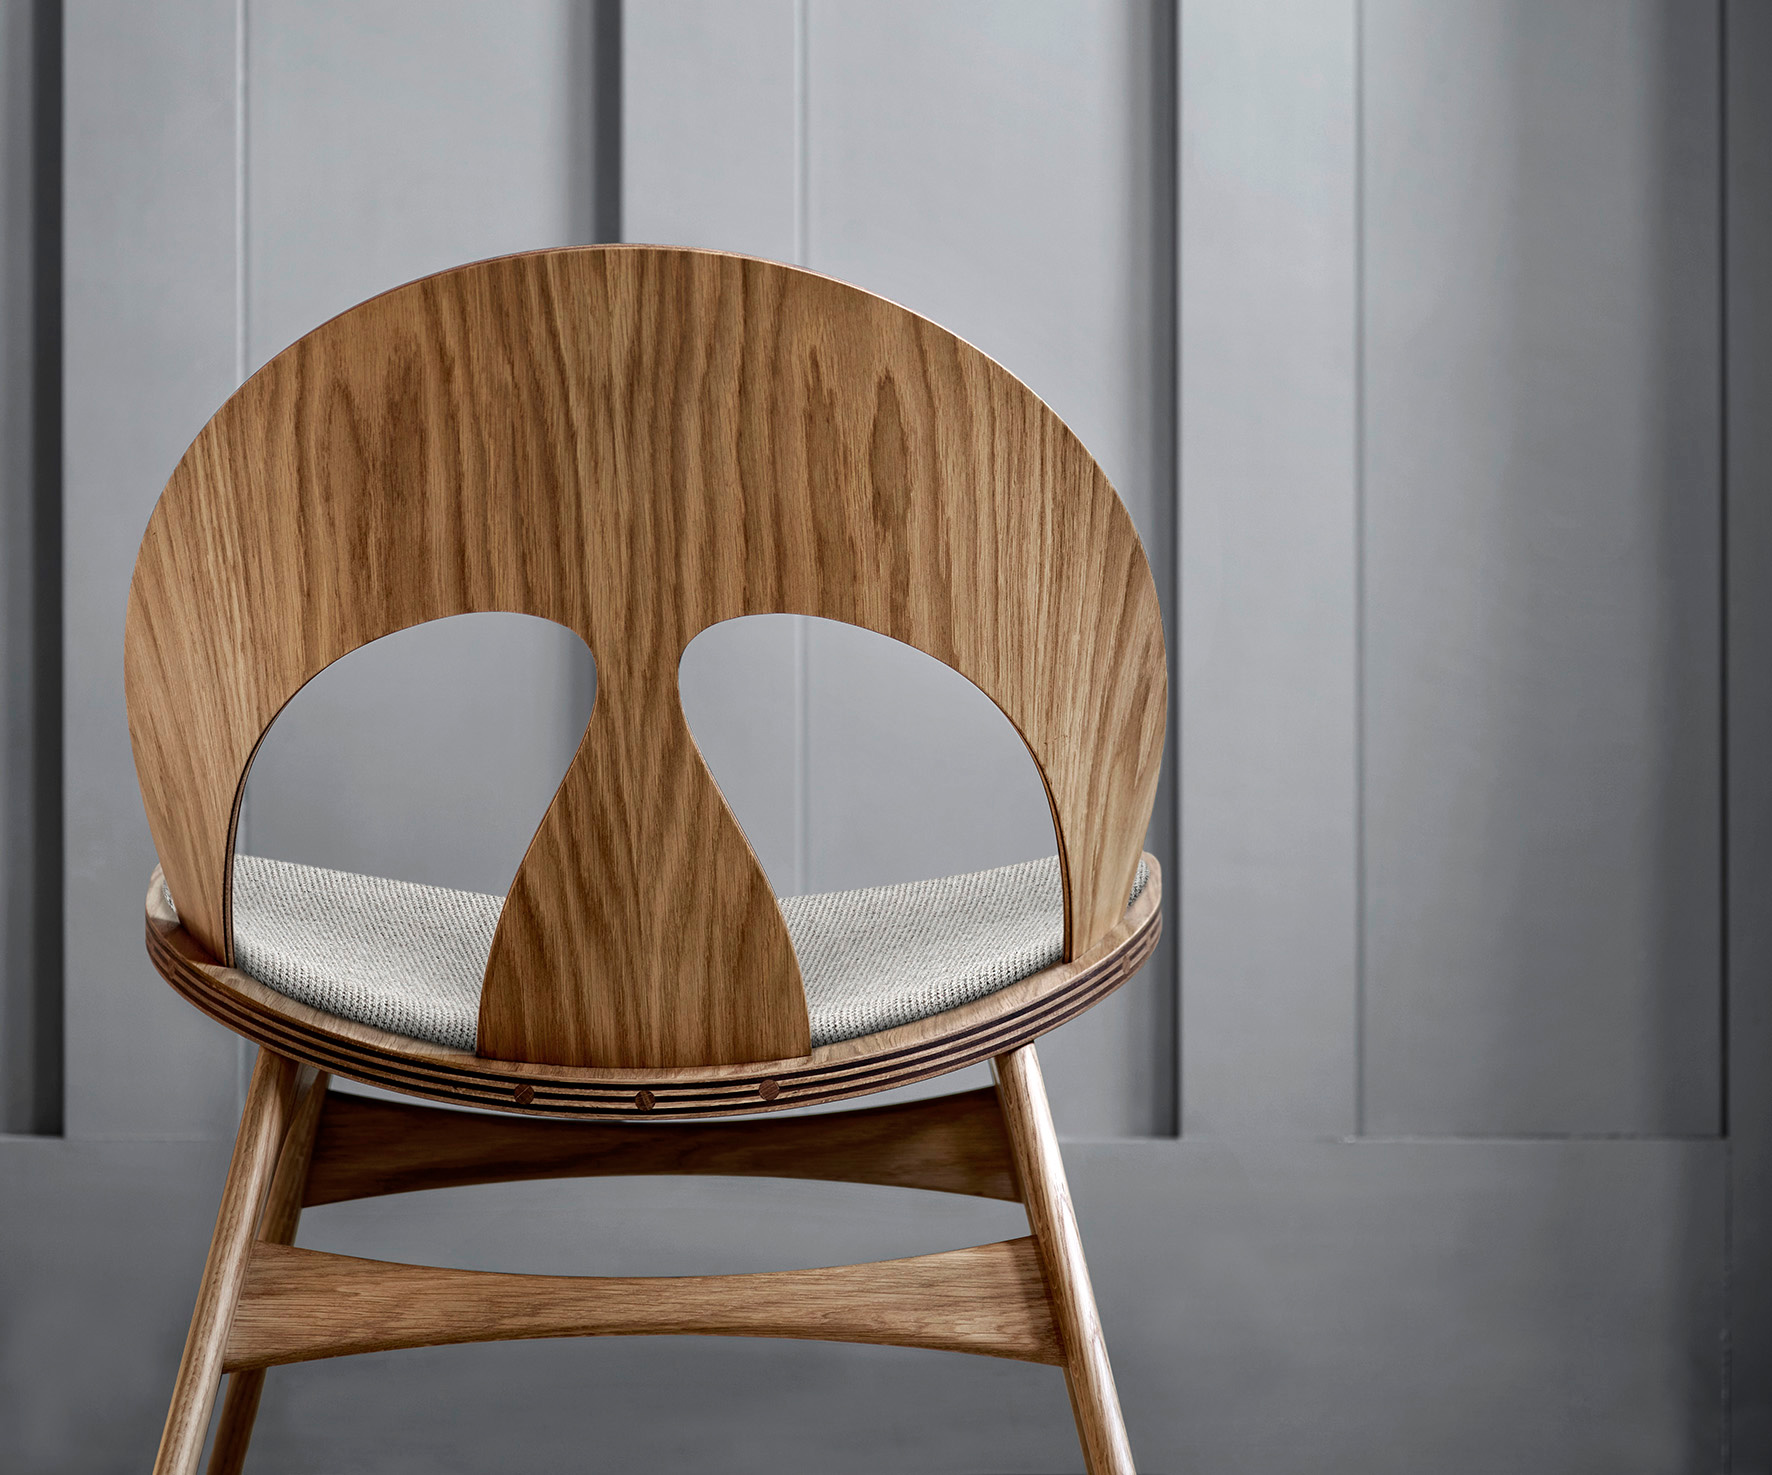 The backrest of the Contour chair | Contour chair by Børge Mogensen for Carl Hansen & Son | STIR